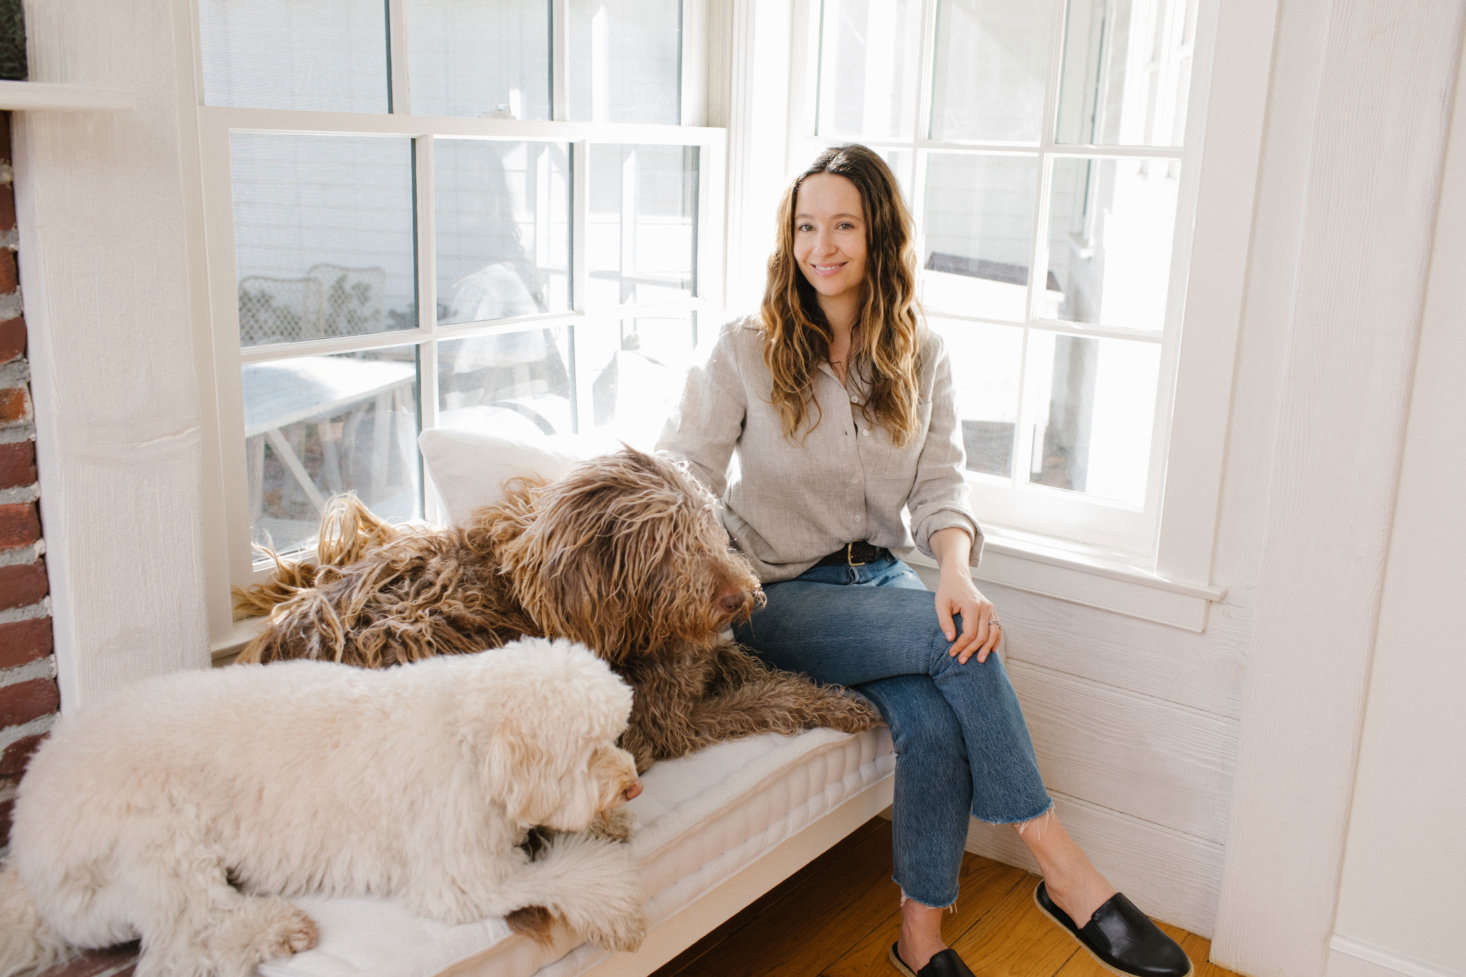 Jenni Kayne, founder of eponymous clothing and homewares company Jenni Kayne, is judging Remodelista categories this year. For more, seeLight and Lofted Above LA: Jenni Kayne President Julia Hunter at Home.